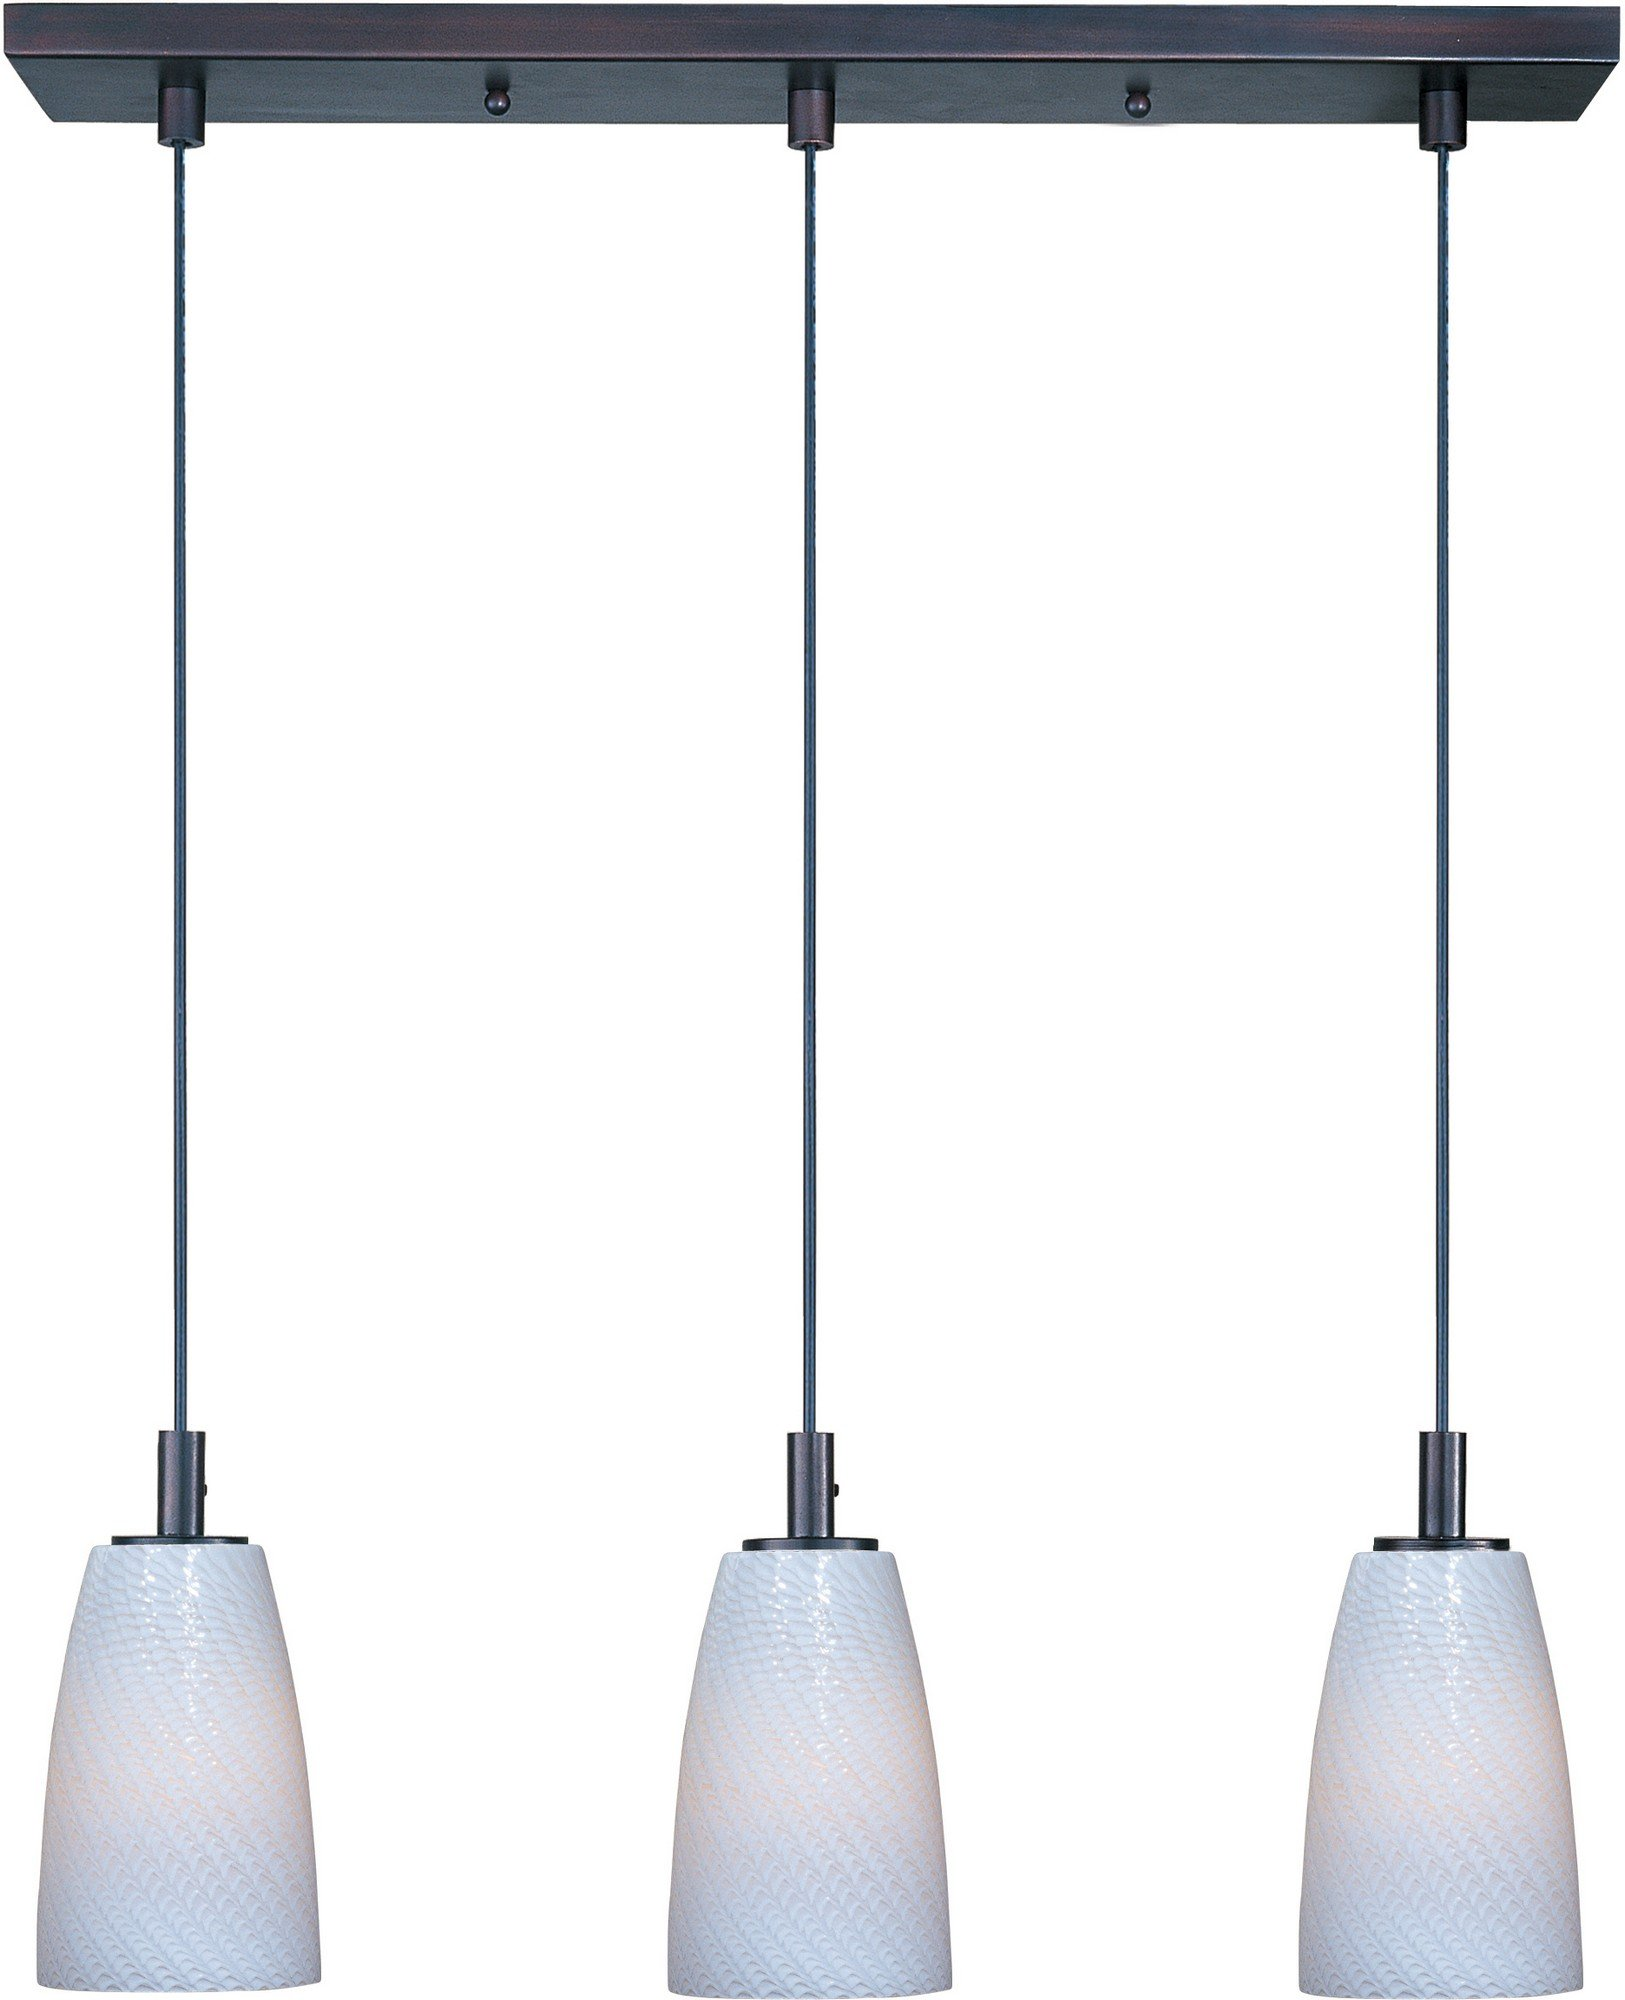 ET2 E92043-13BZ Carte 3-Light Linear Pendant, Bronze Finish, White Ripple Glass, MB Incandescent Bulb, 7.25W Max., Dry Safety Rated, Shade Material, 1150 Rated Lumens